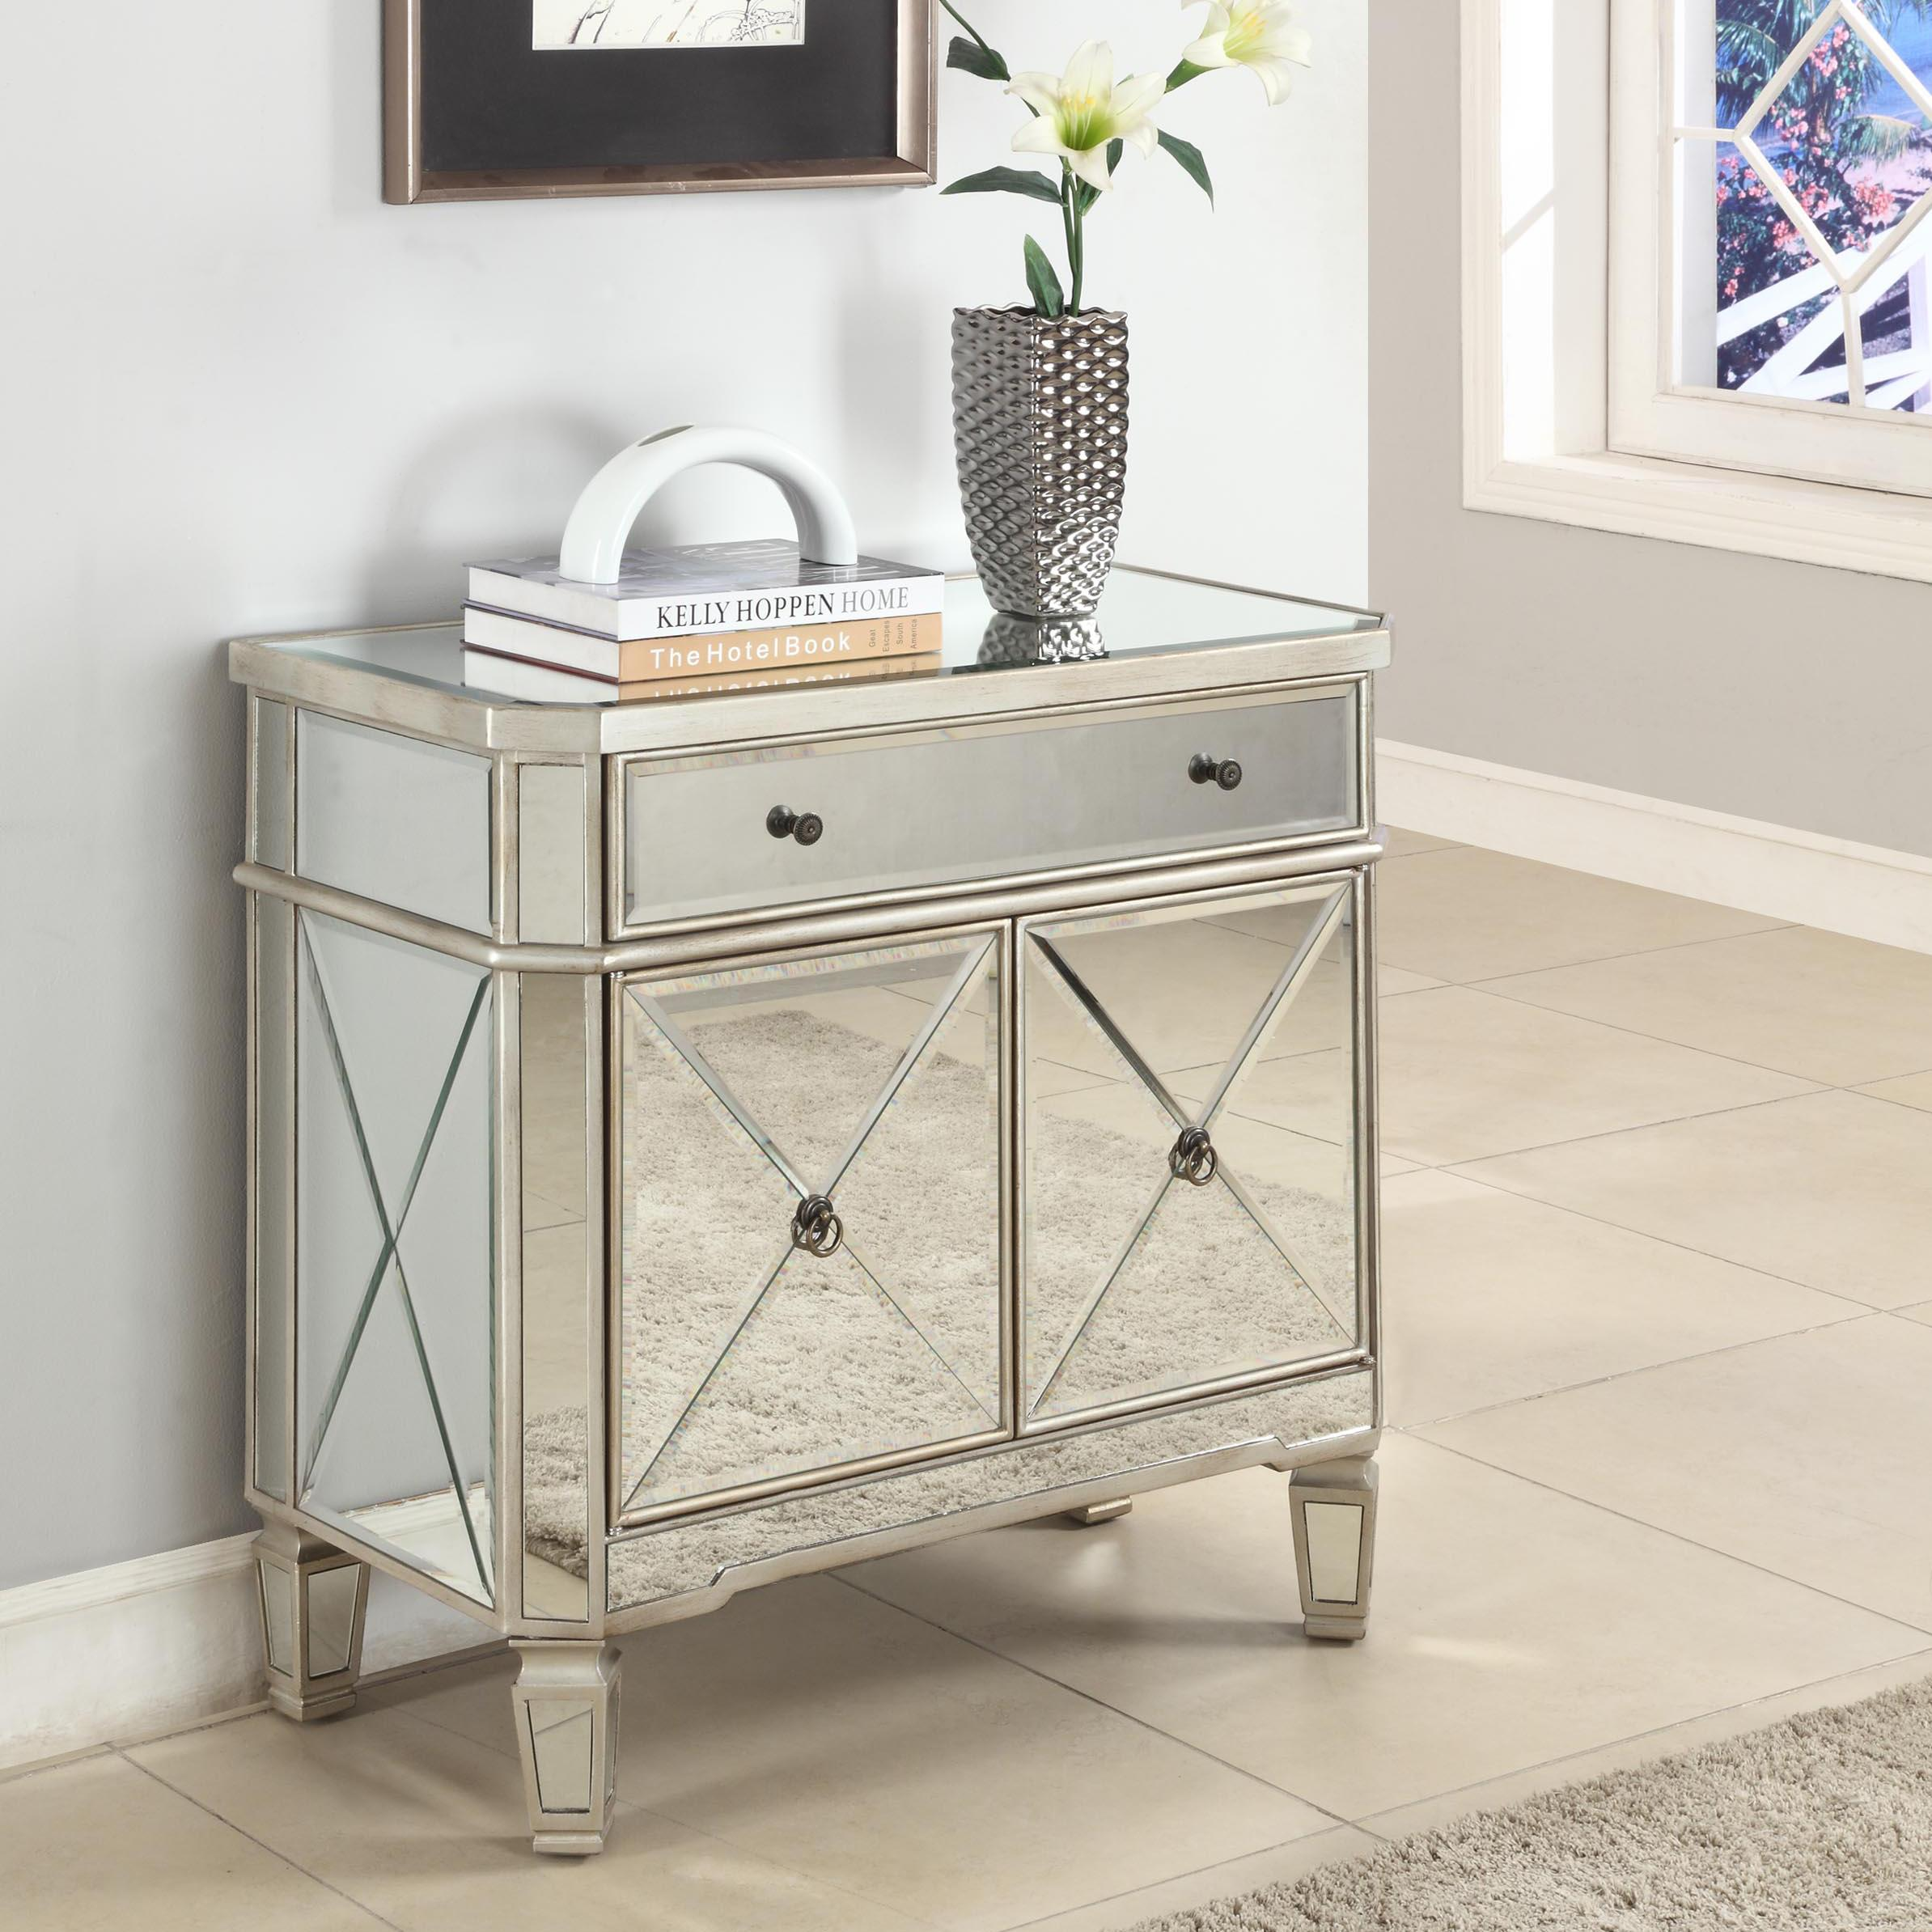 Powell Accents Mirrored Console - Item Number: 233-228